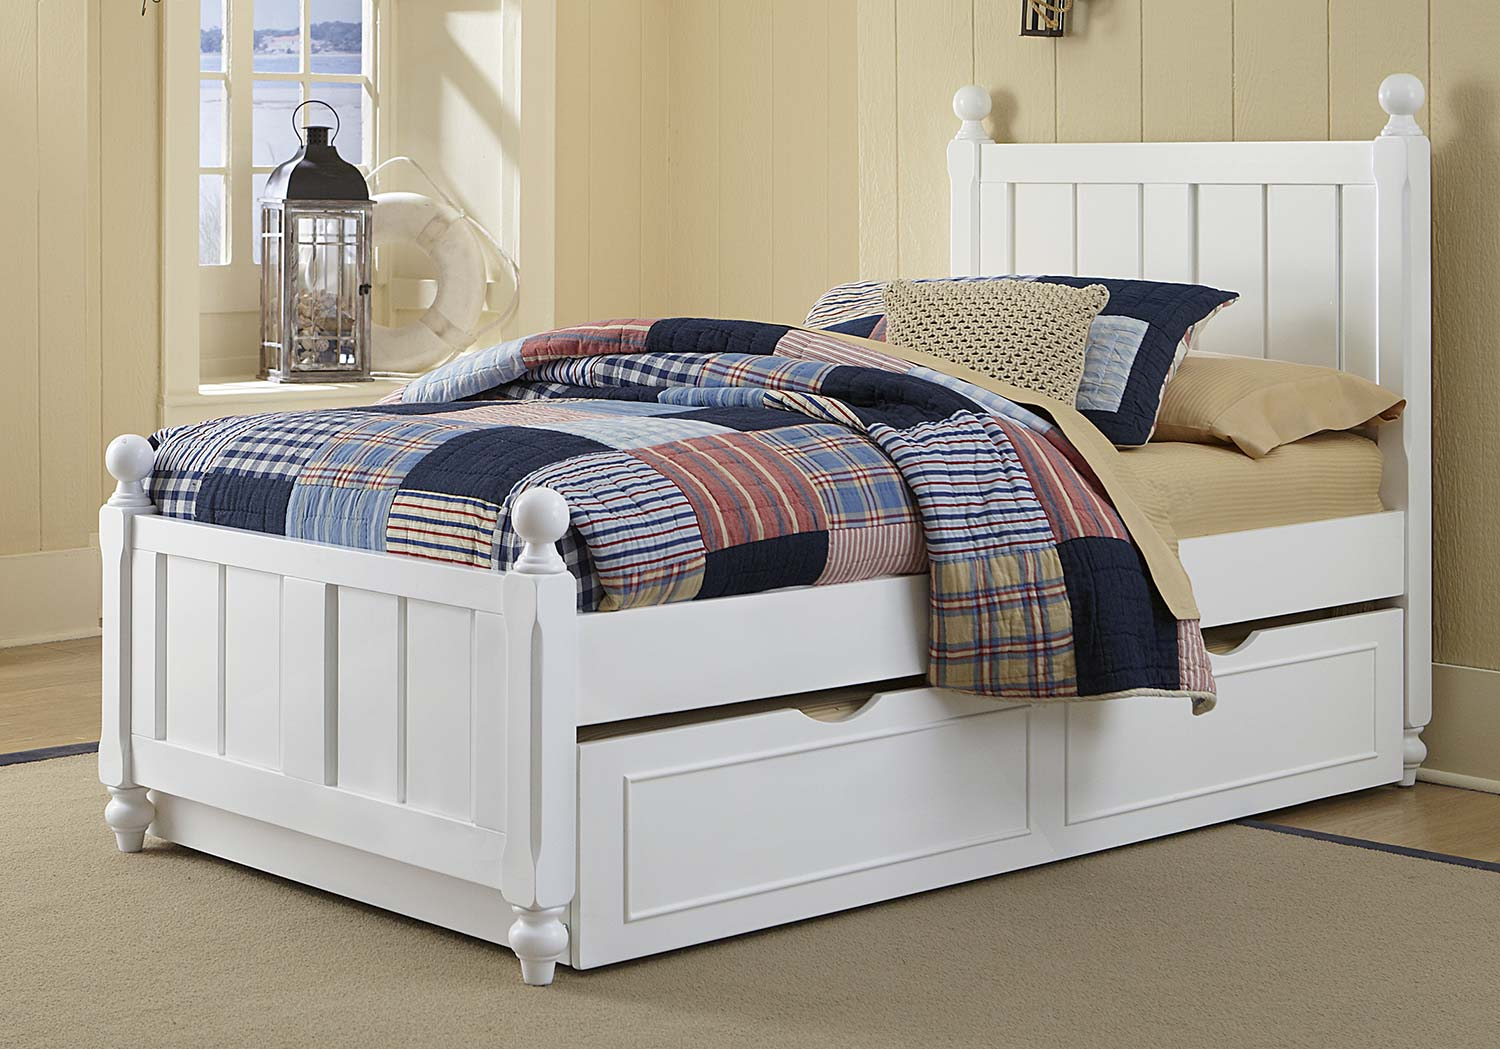 NE Kids Lake House Kennedy Bed With Trundle - White